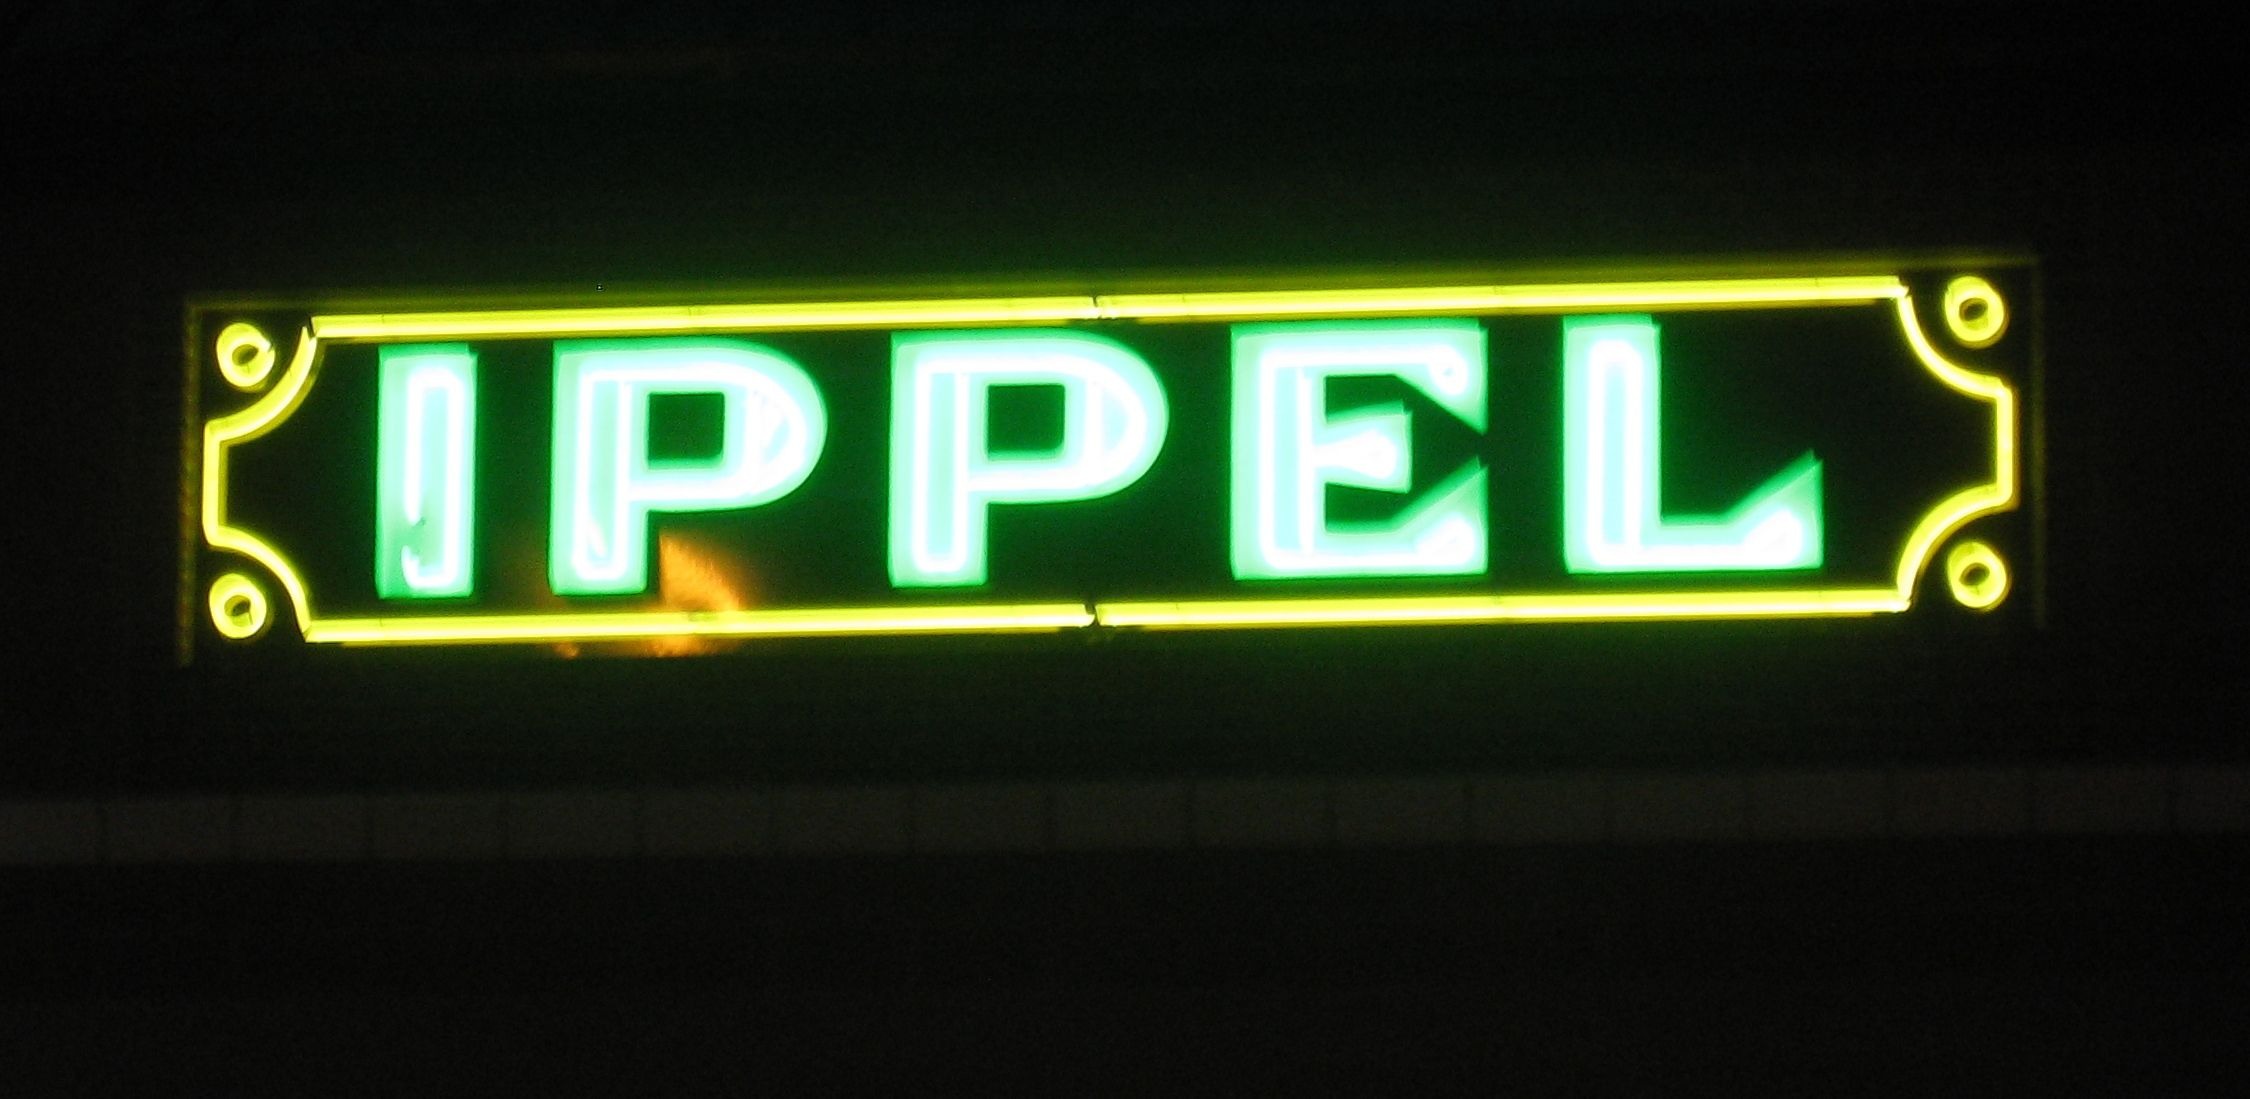 former ippel's department store sign in saginaw, michigan. this